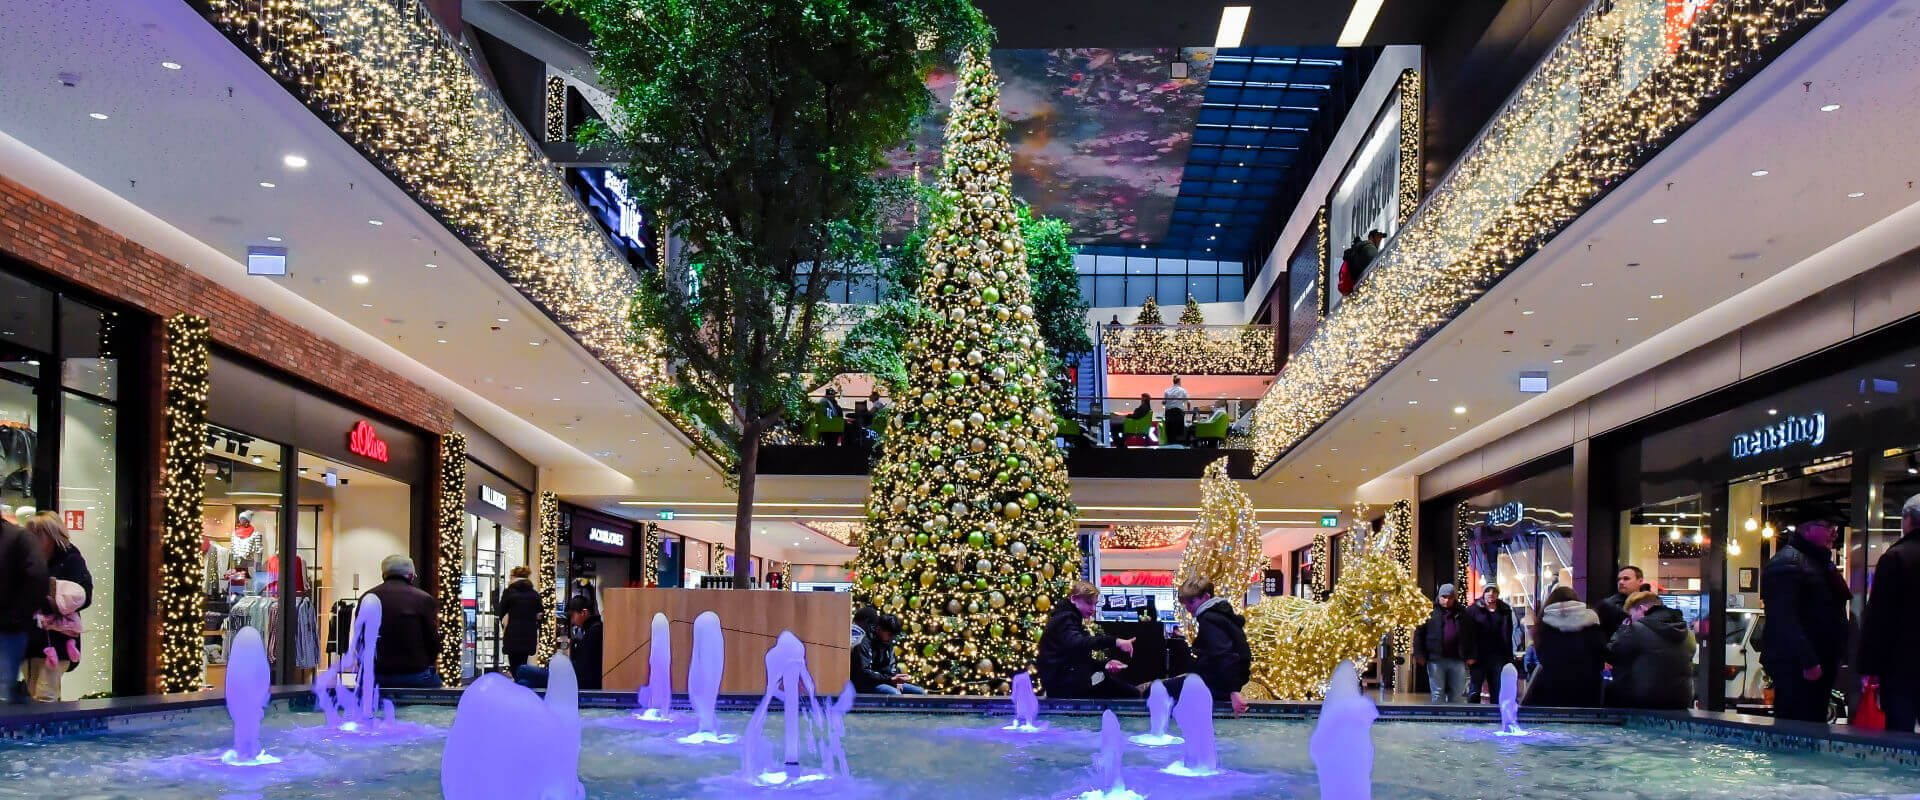 Festive Decorative Lighting For Shopping Centers And Malls